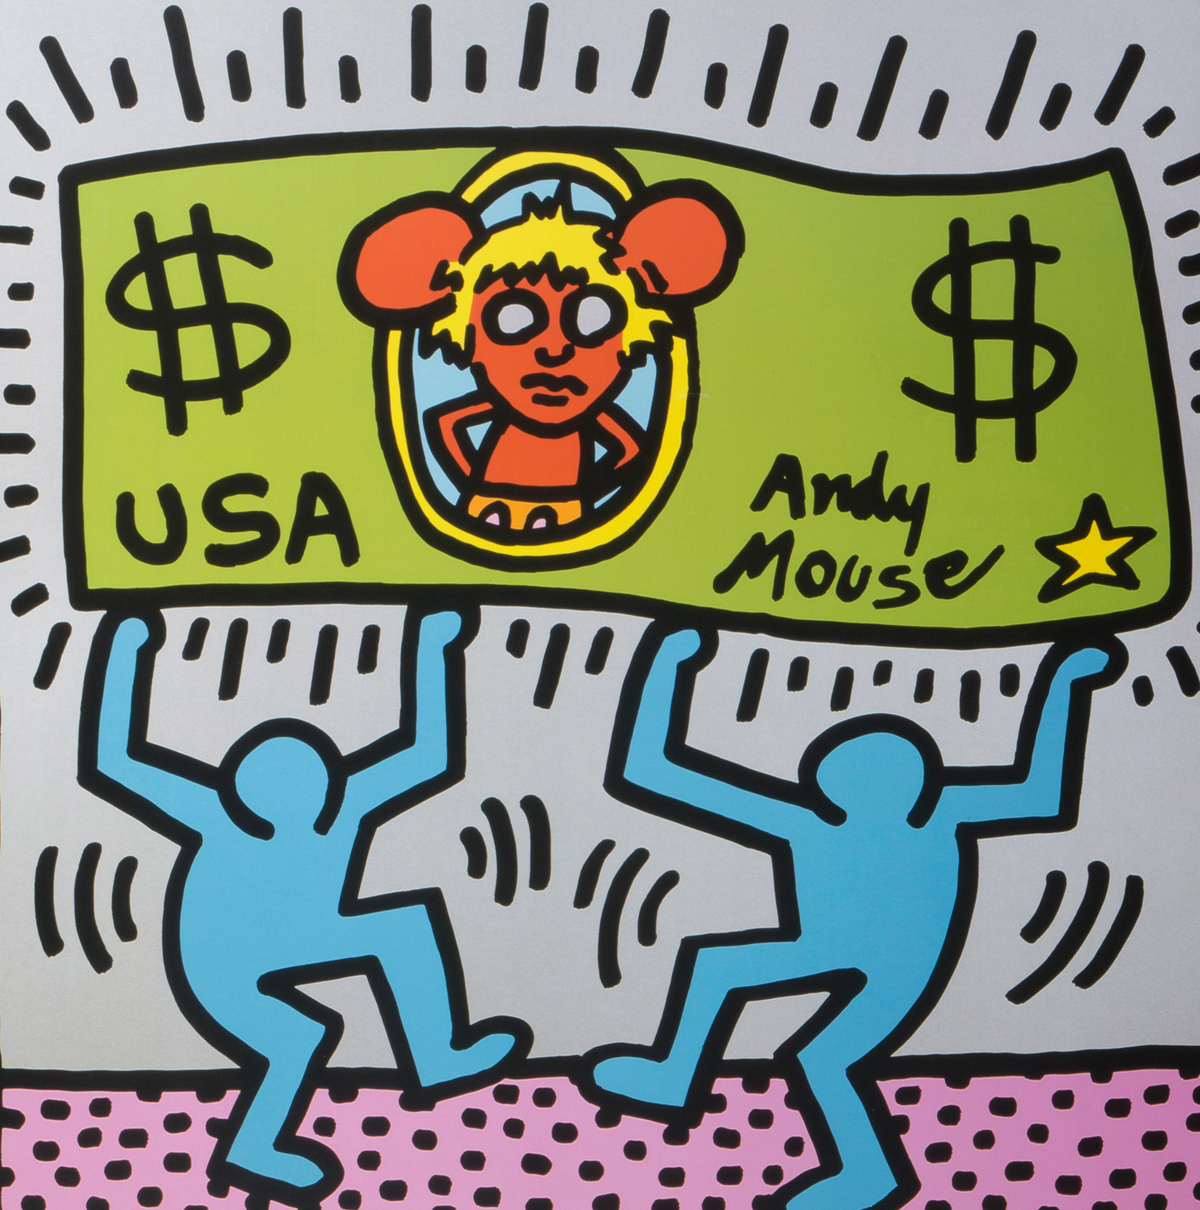 Andy Mouse 1